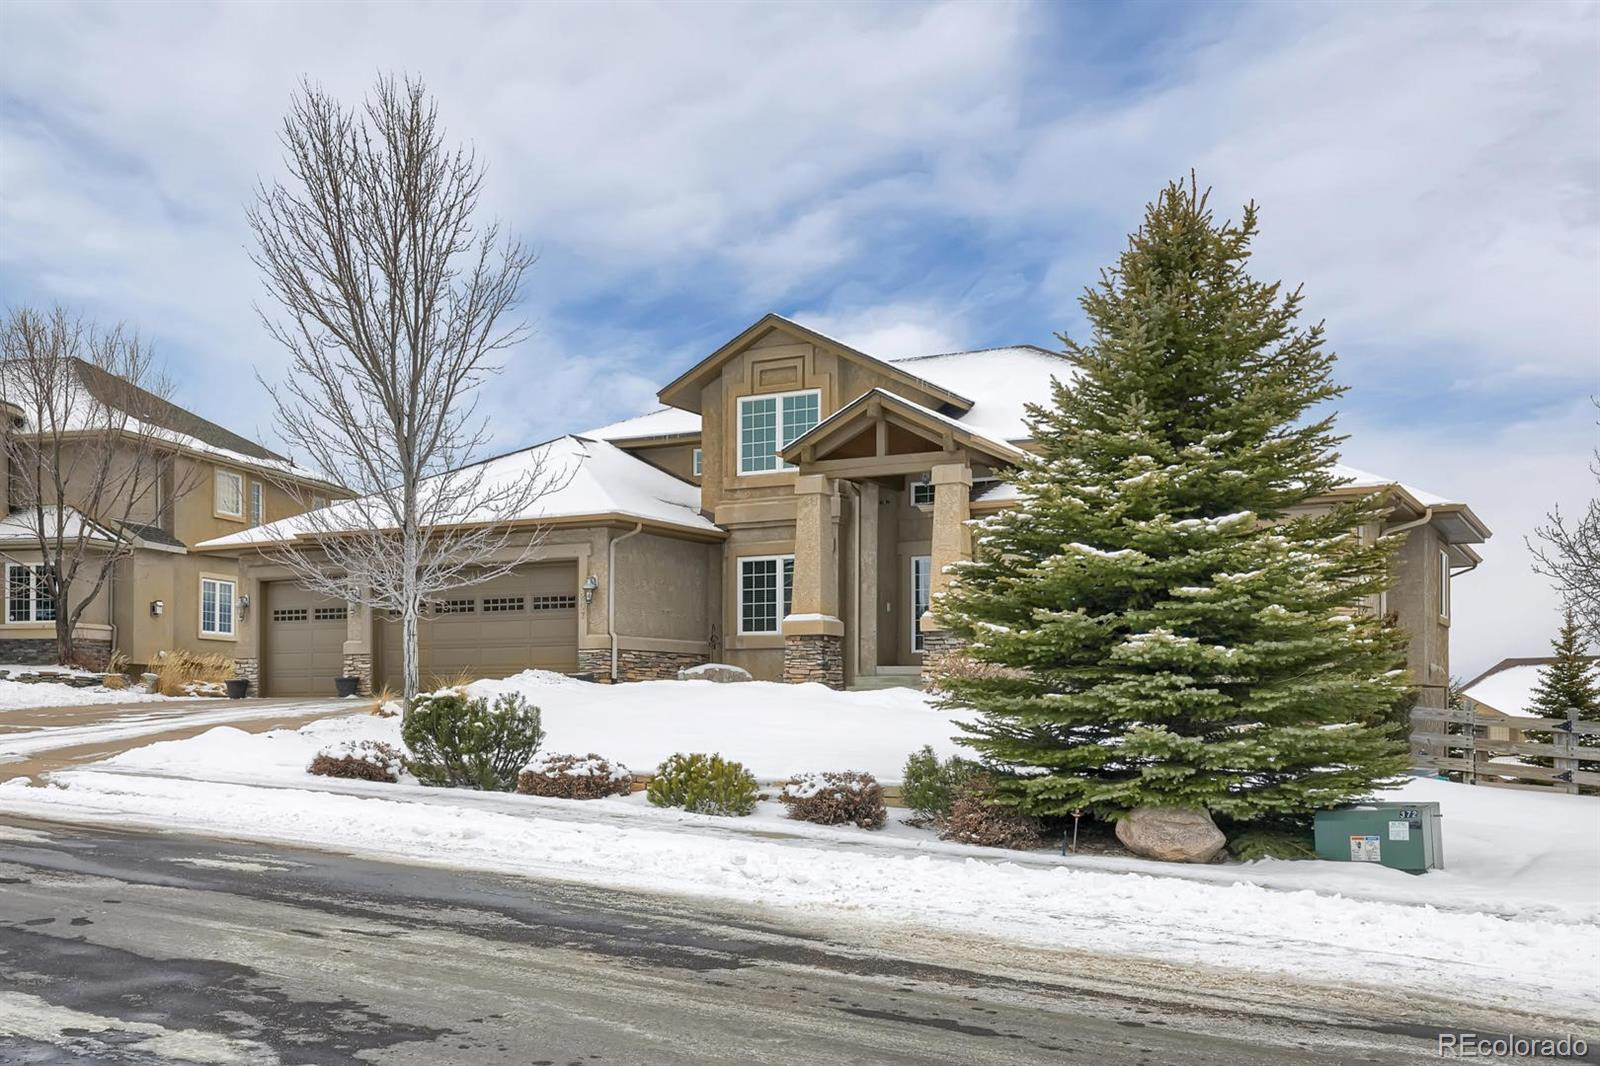 MLS# 5159811 - 37 - 207 Green Rock Place, Monument, CO 80132